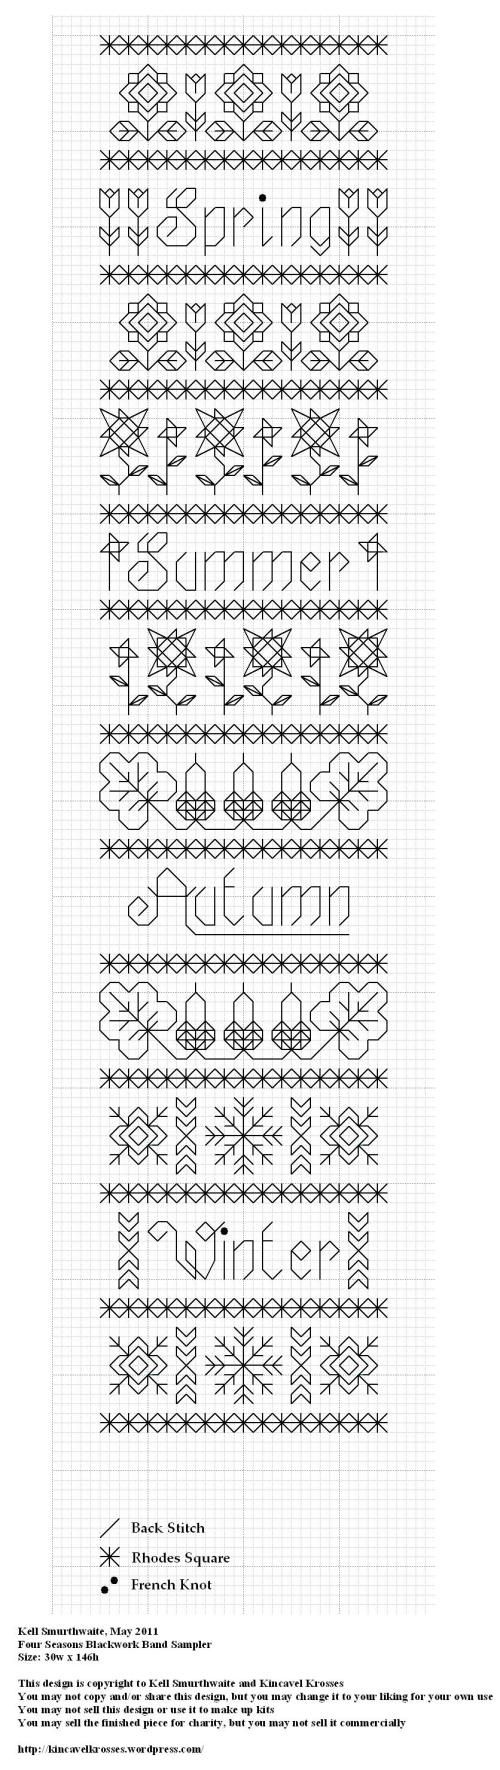 Four Seasons Blackwork Sampler 1